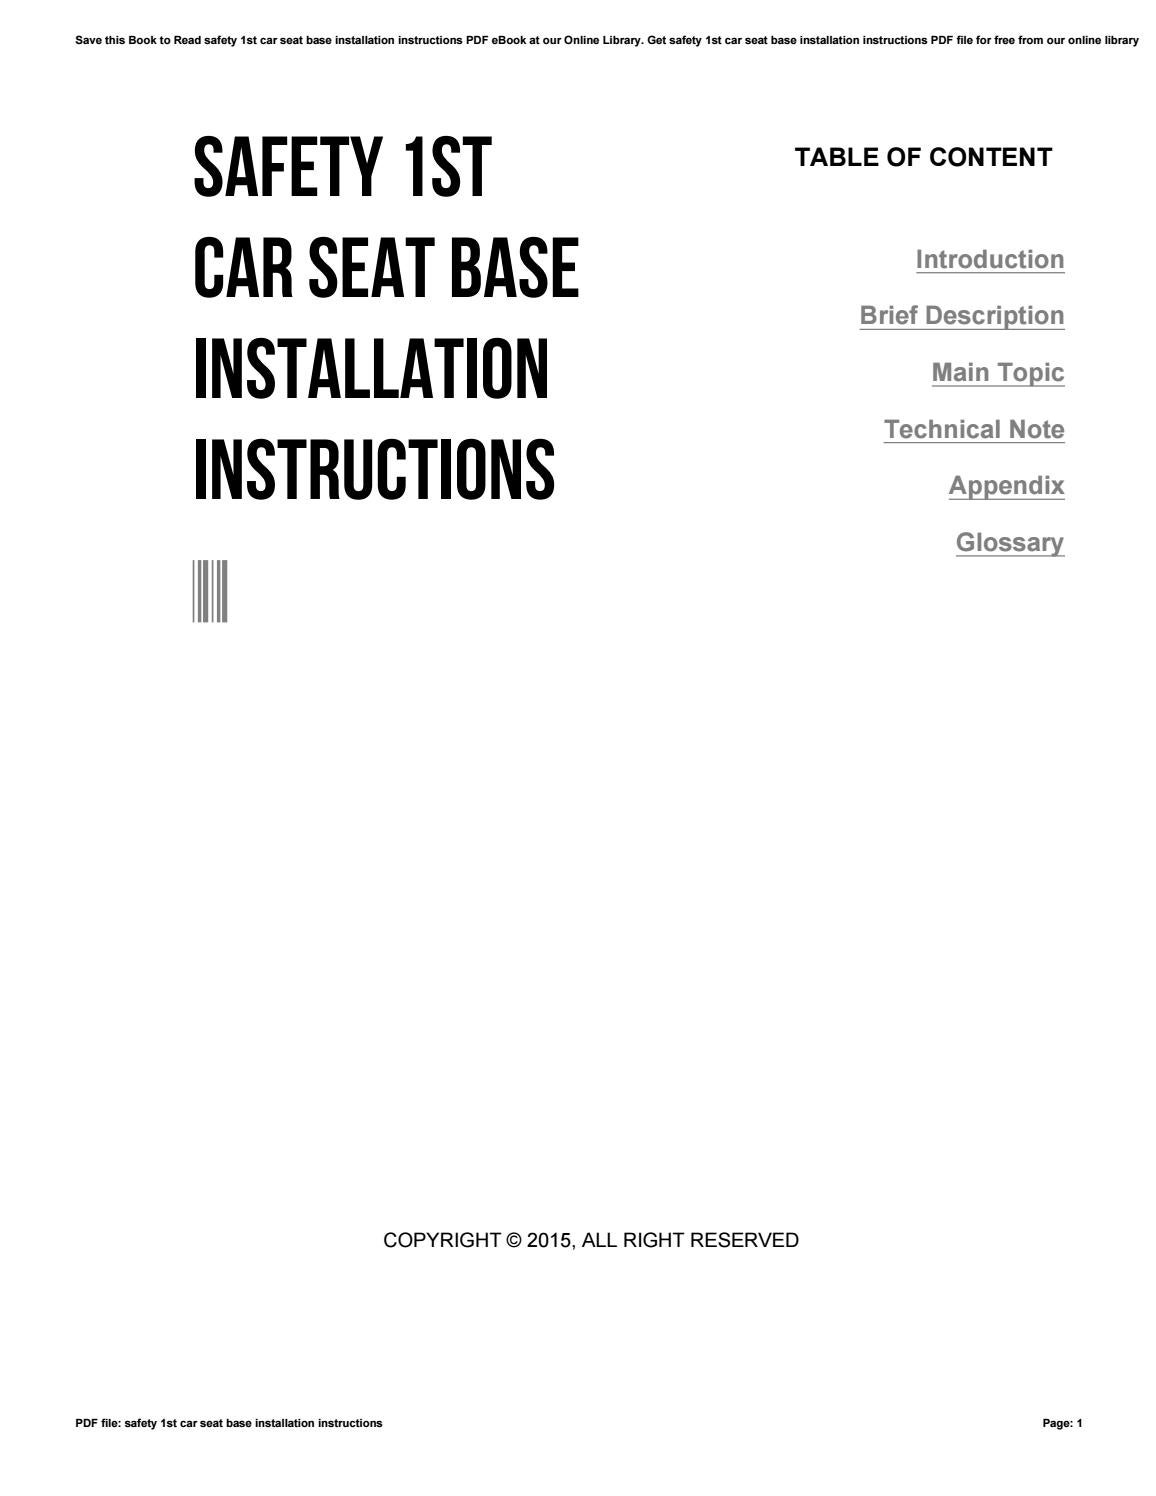 Safety 1st car seat base installation instructions by